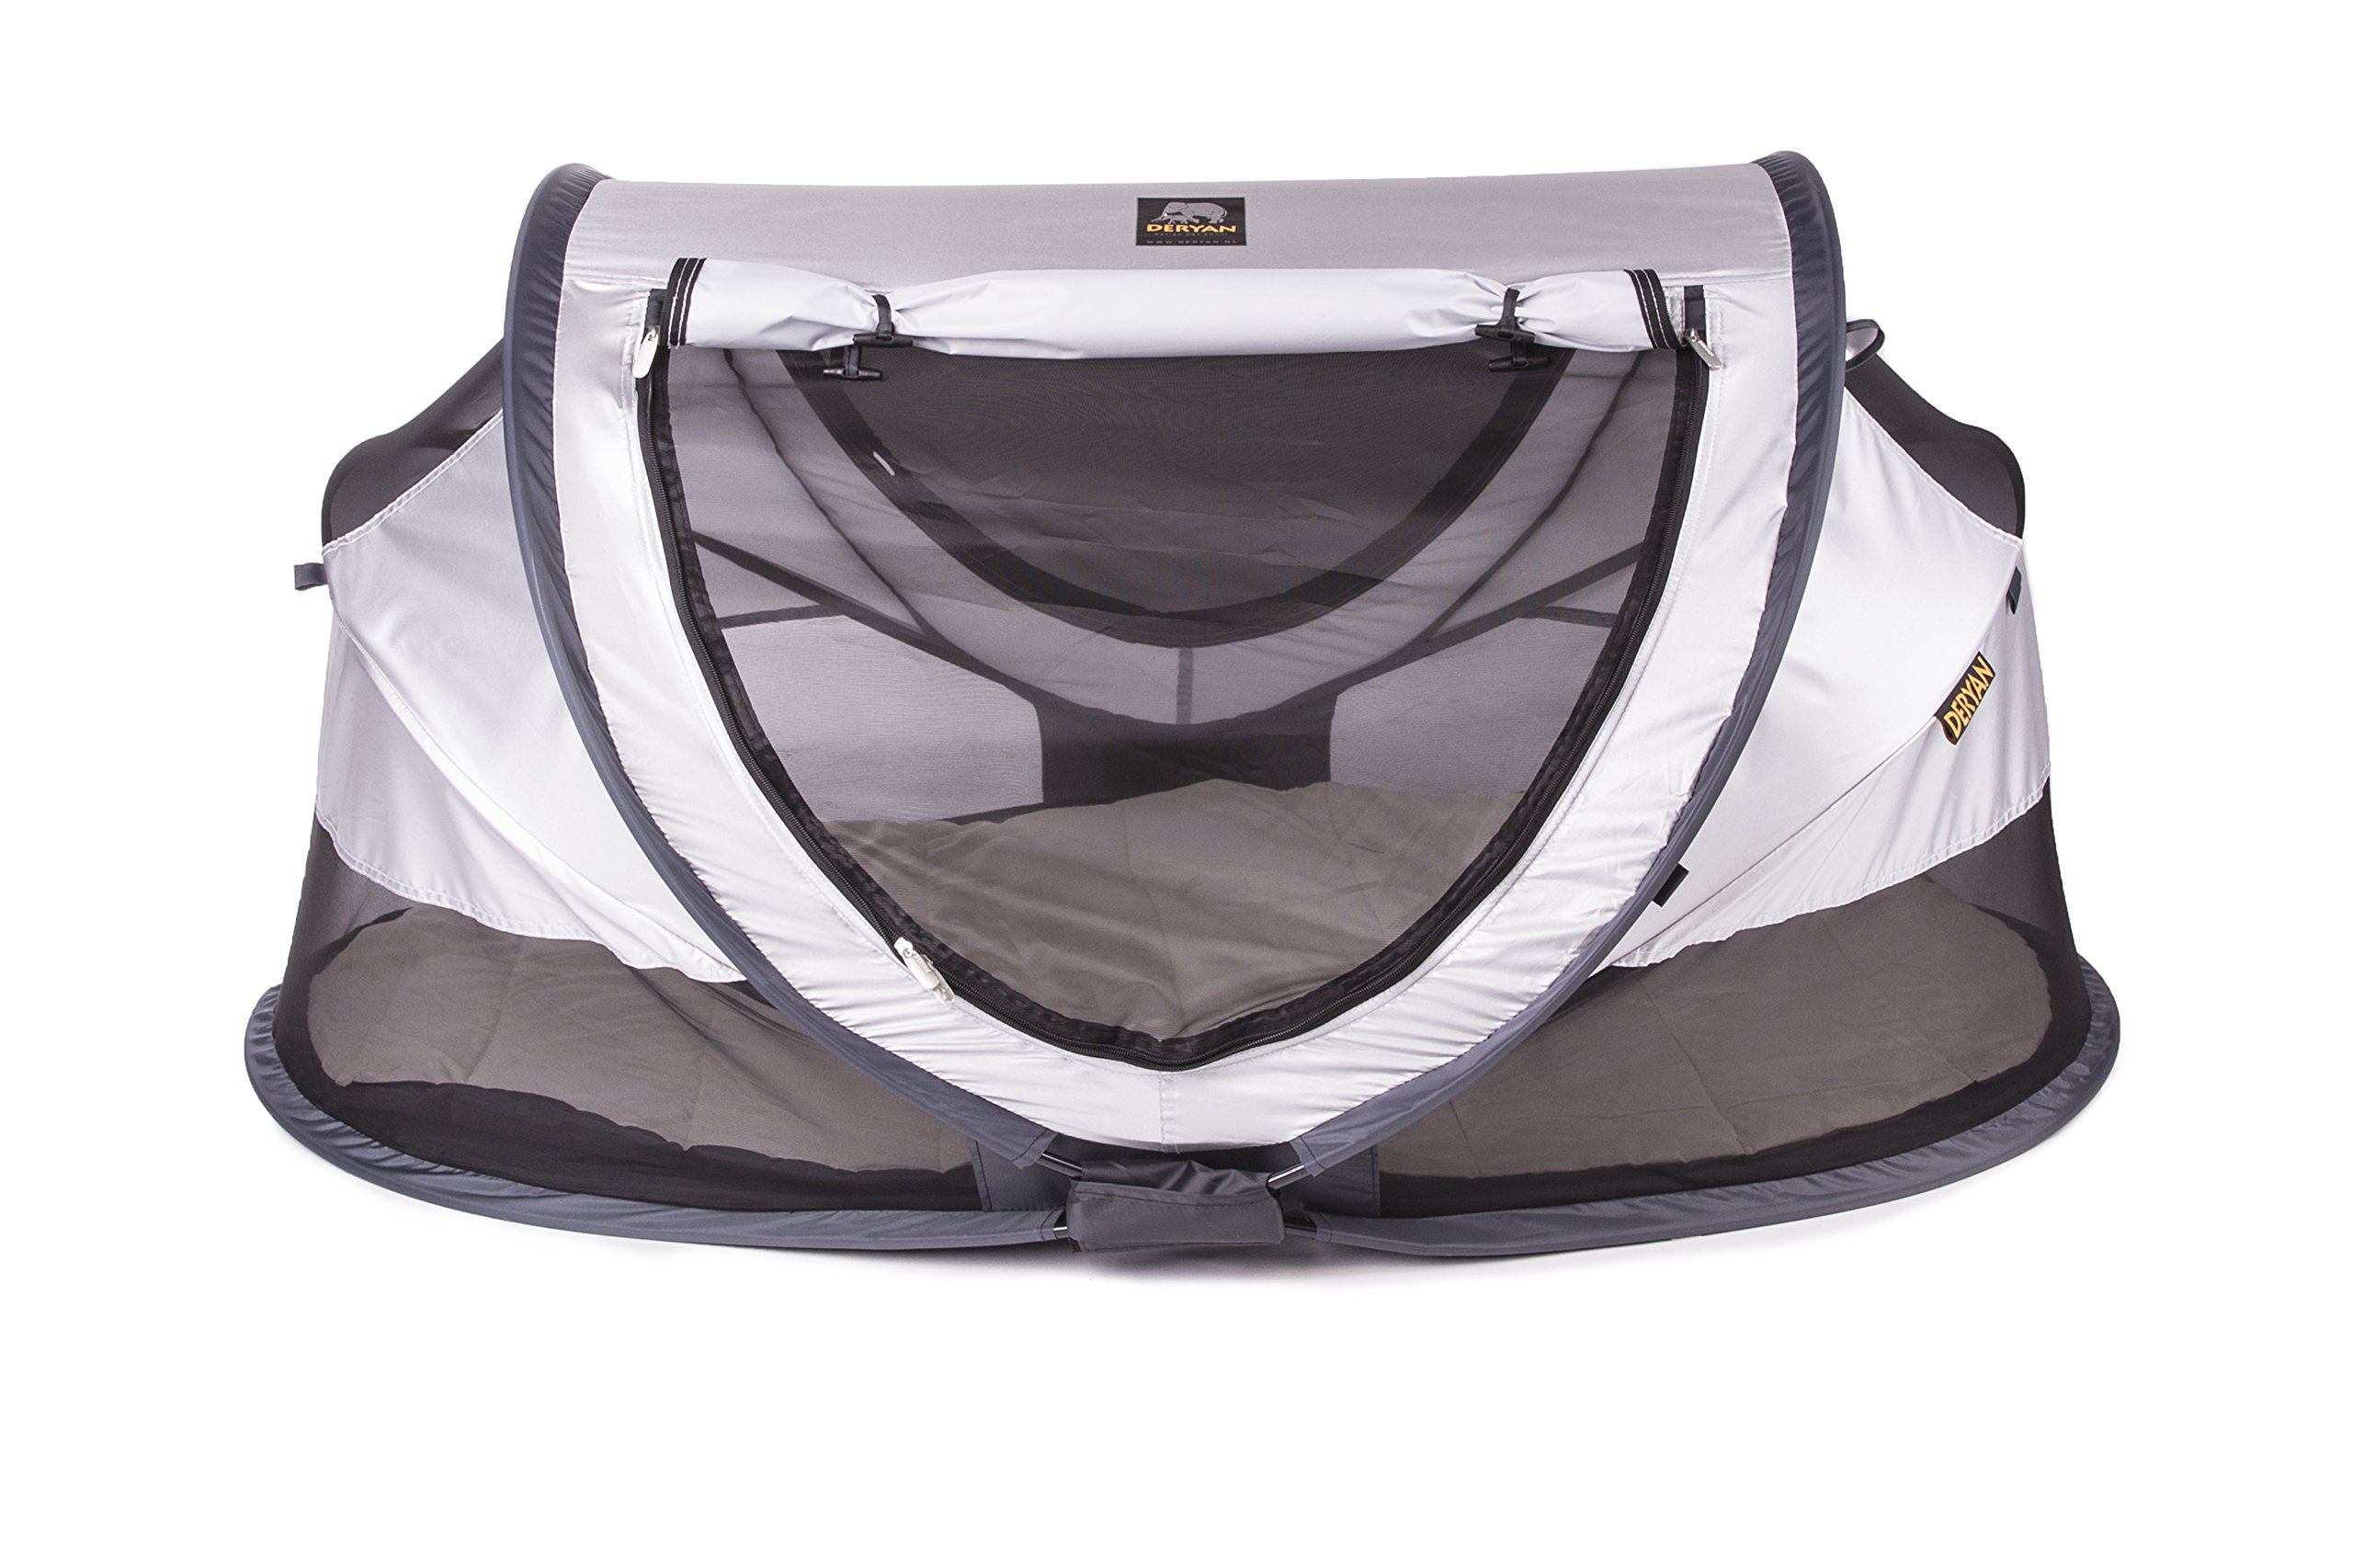 Travel Cot Peuter Luxe (Silver) Deryan 50% UV Protection and flame retardant fabric Setup in 2 seconds and a anti-musquito net  1